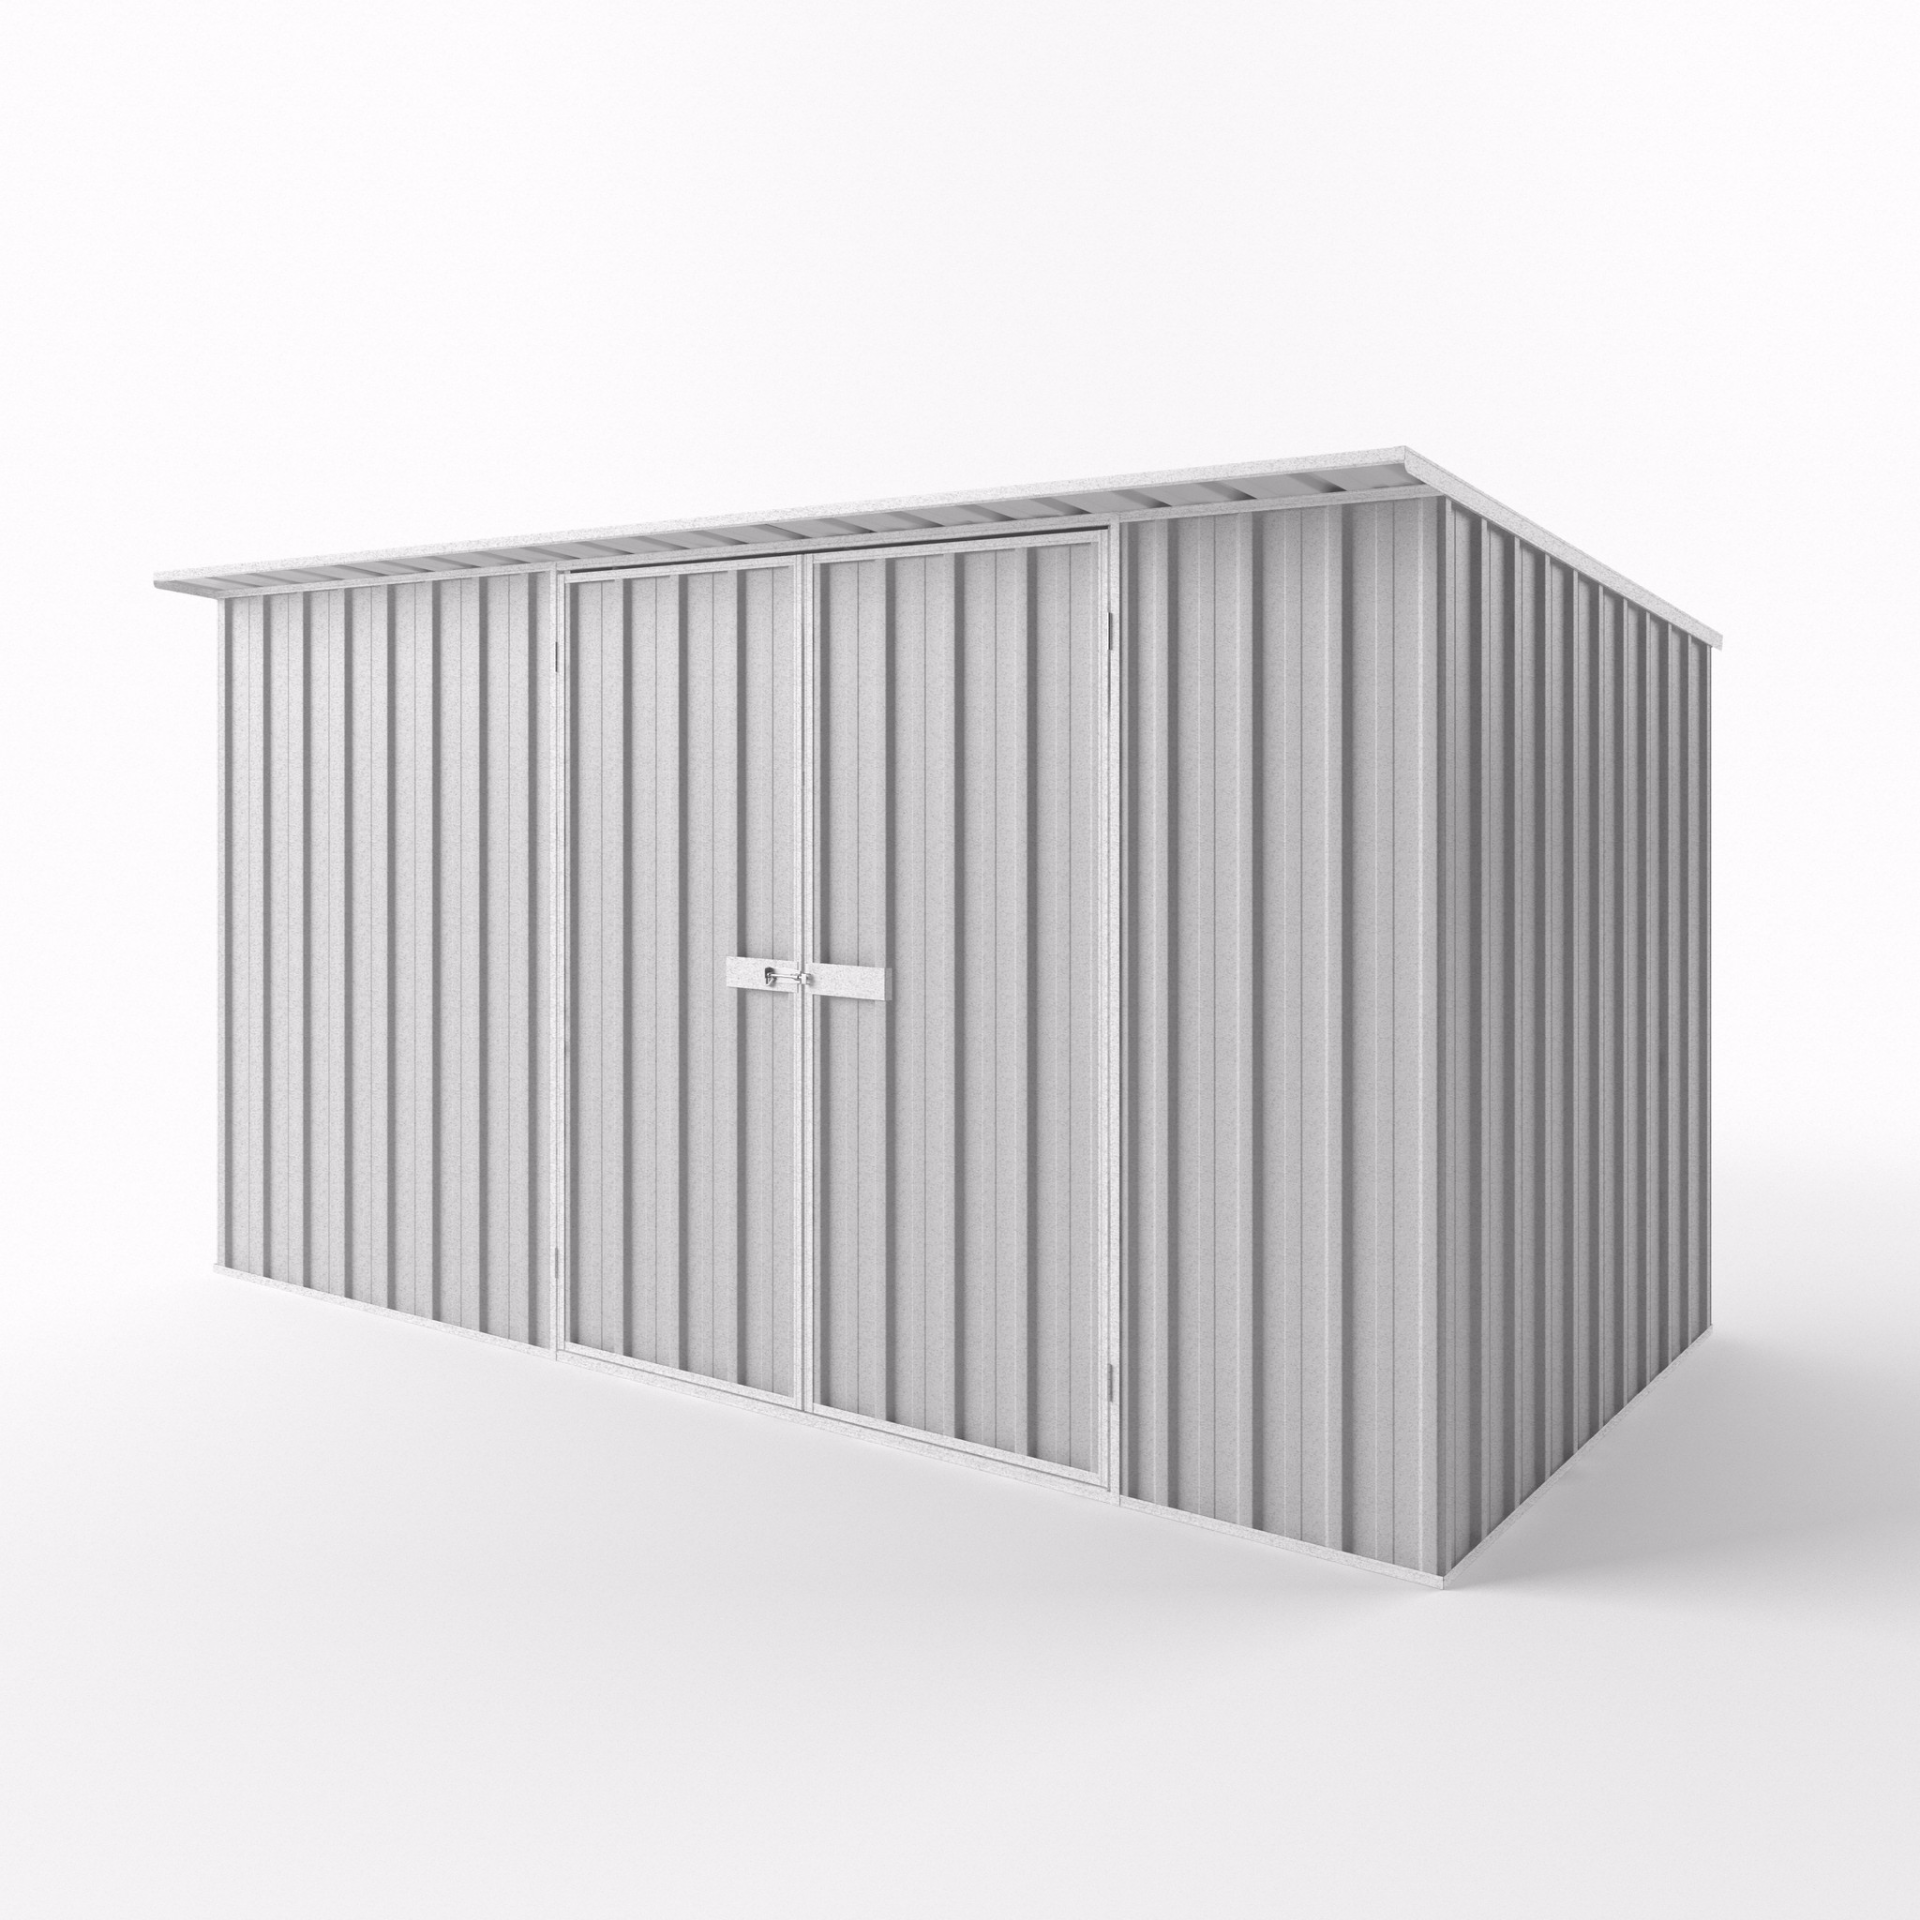 Skillion Garden Shed - 3.75m x 1.90m x 2.10m Height